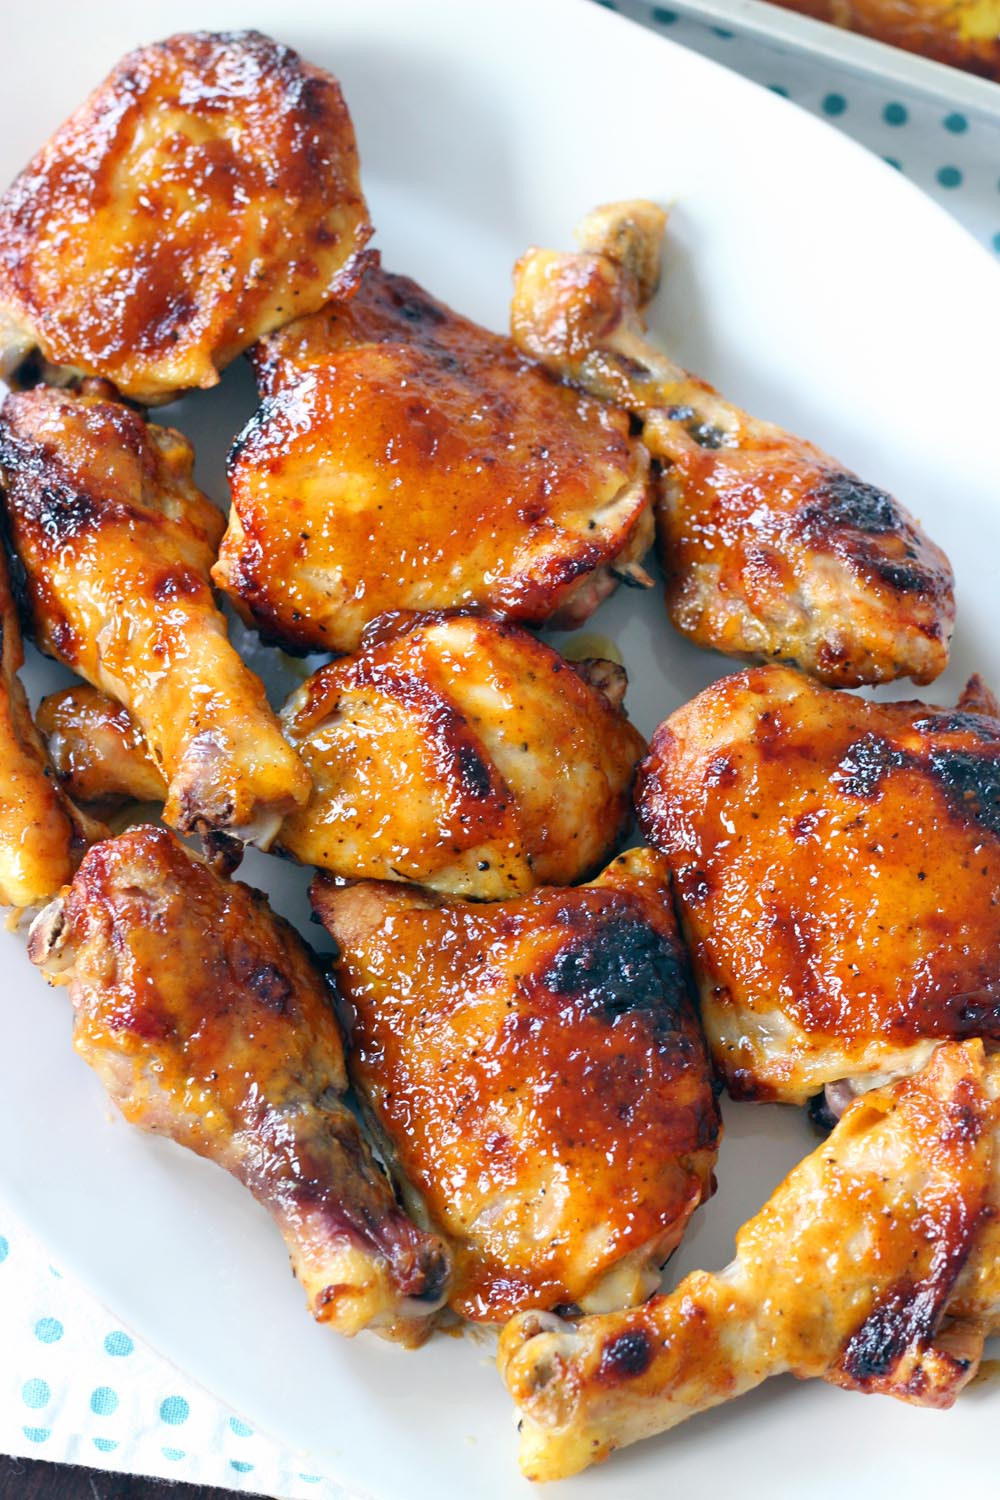 Oven Baked Chicken Recipe  Two Ingre nt Crispy Oven Baked BBQ Chicken